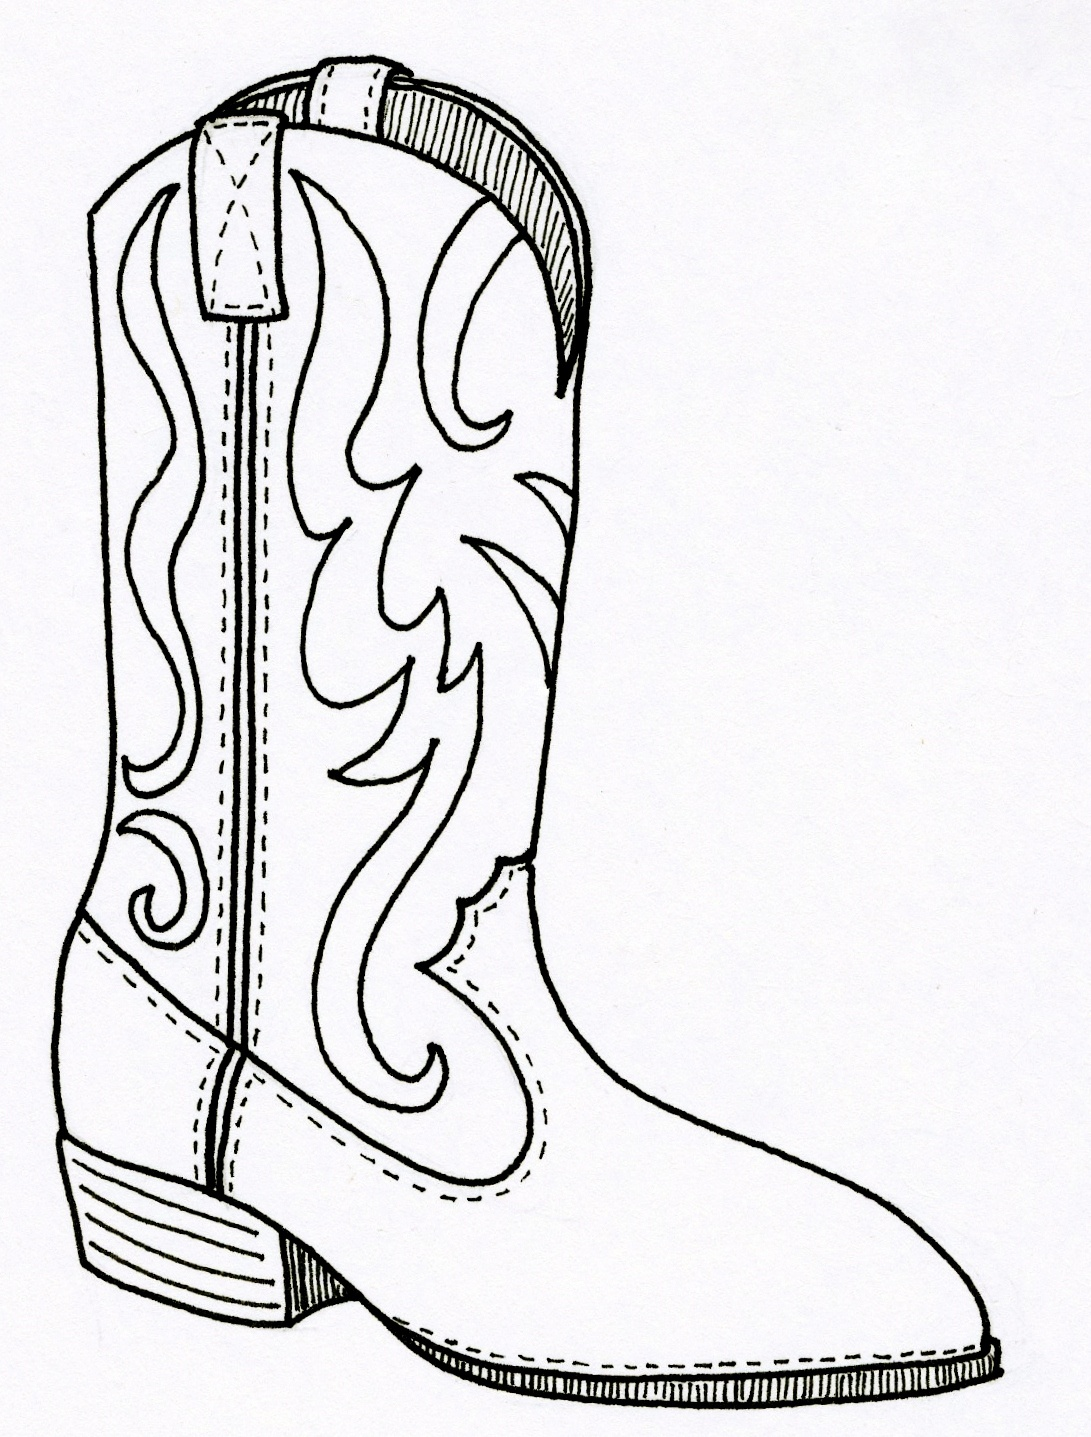 Cowgirl Boots Coloring Pages. Boot Zum Ausmalen Schnelles Boot - Free Printable Cowboy Boot Stencil